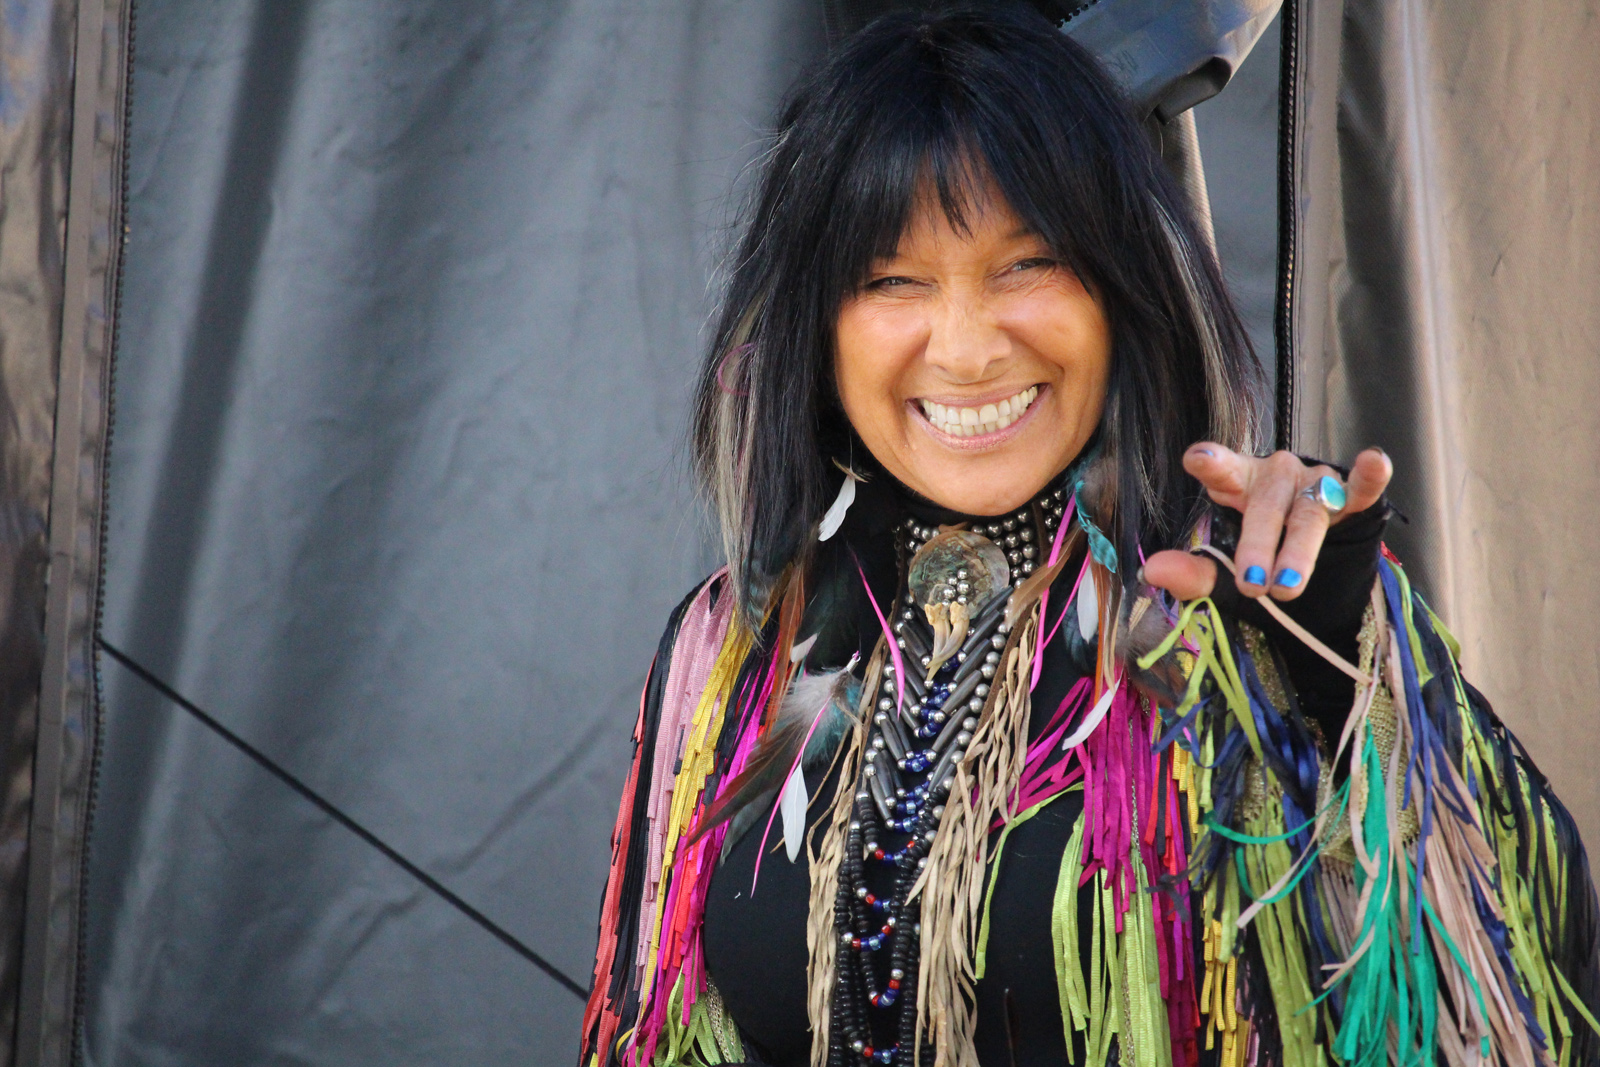 Buffy St. Marie will be among the entertainers appearing at SKOOKUM Music Festival.